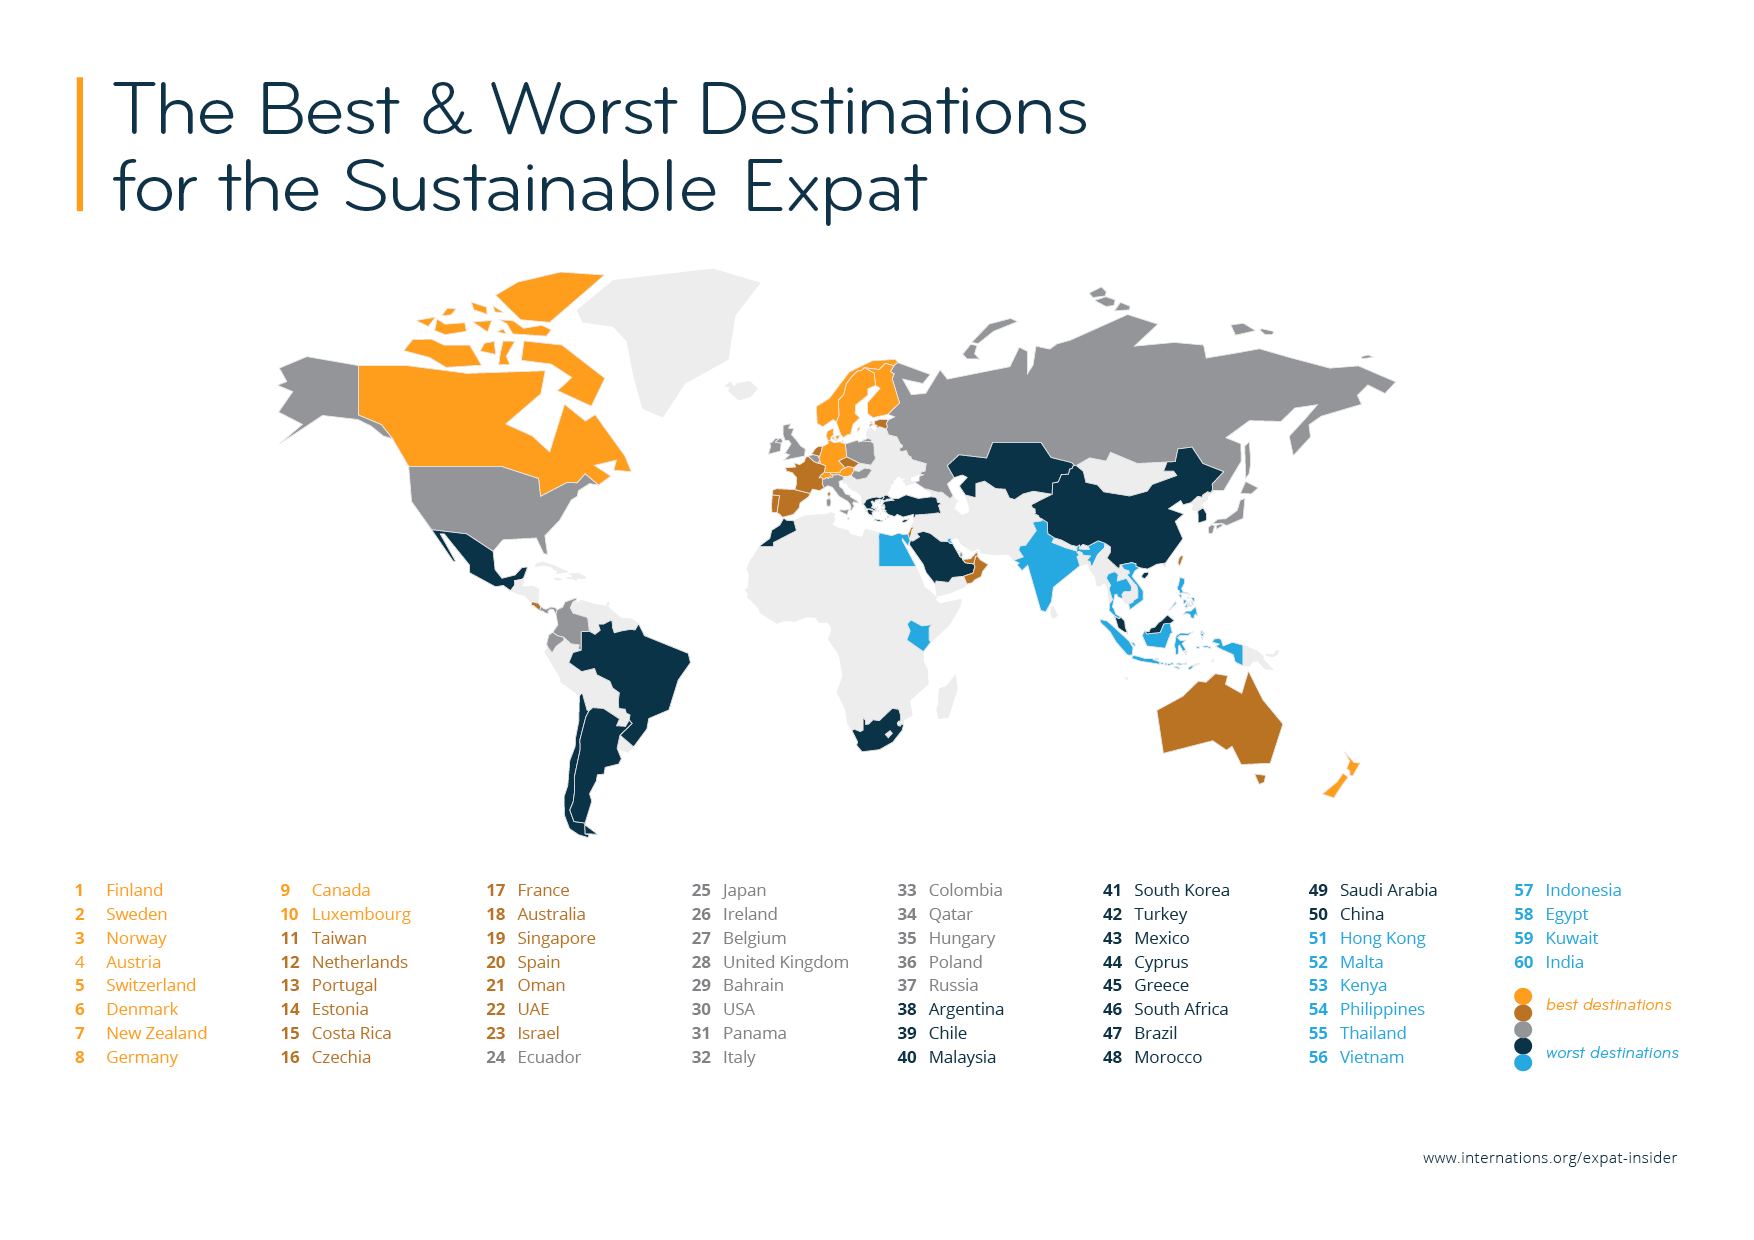 The Best & Worst Destinations Worldwide for the Sustainable Expat